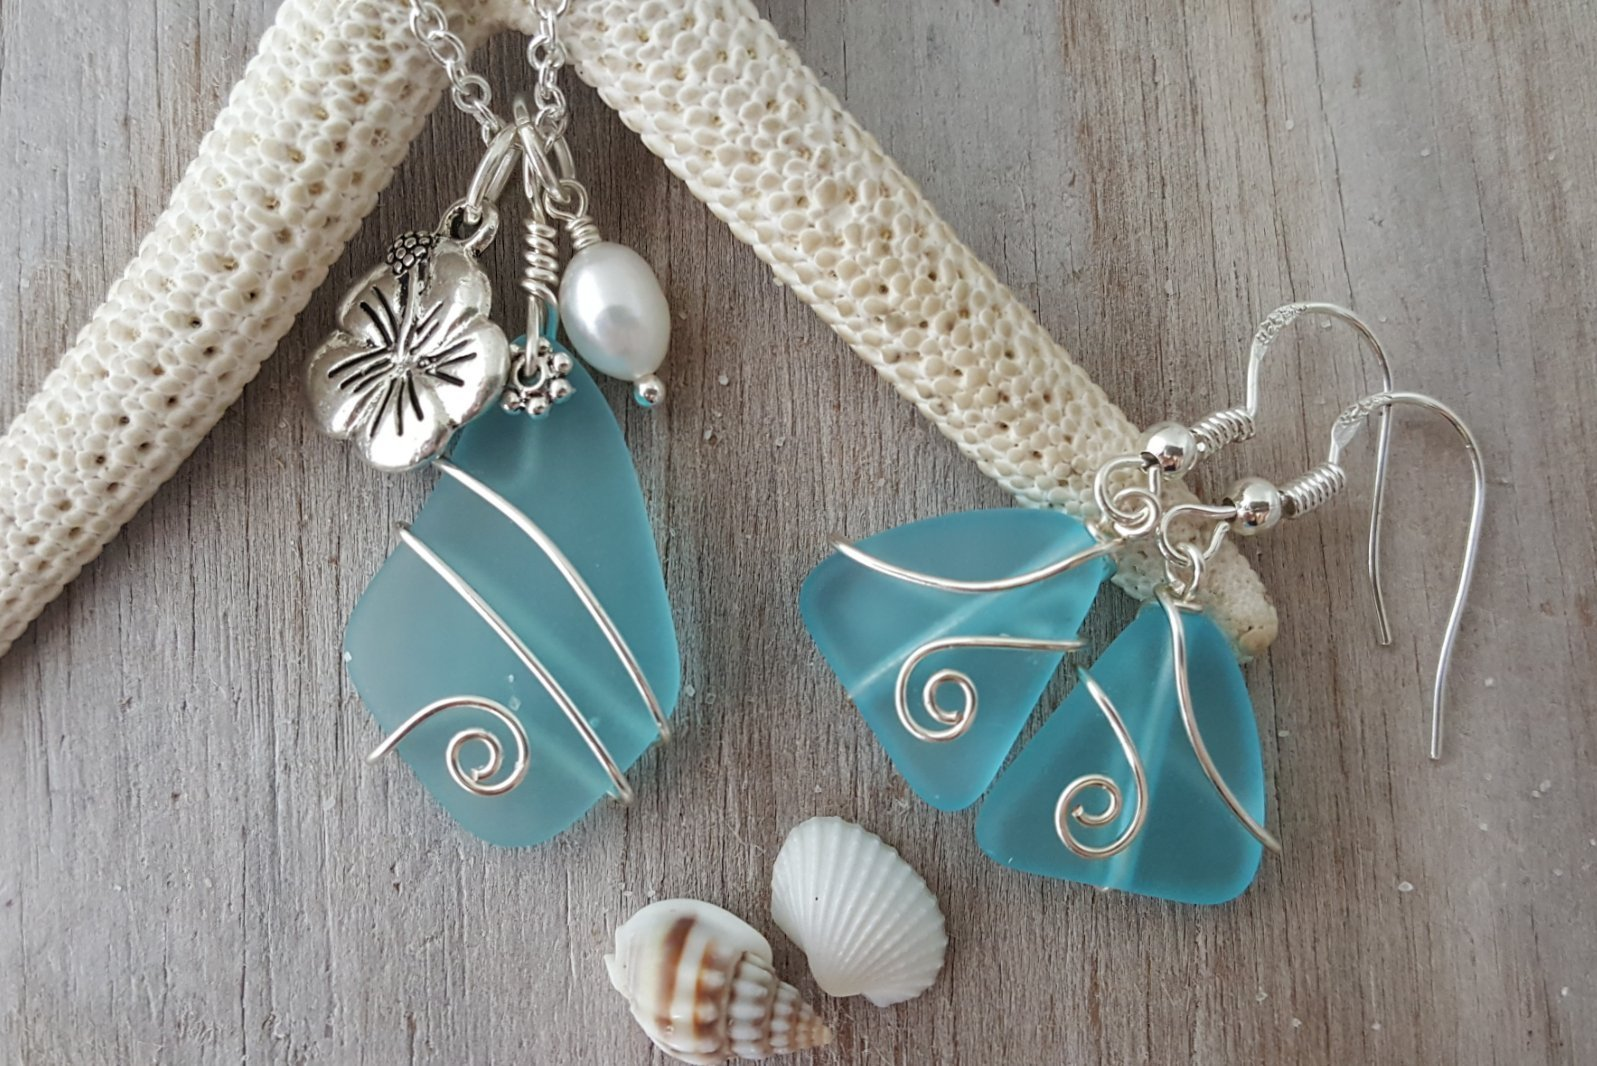 Handmade in Hawaii, wire wrapped Turquoise Bay blue sea glass necklace + earrings set, Hawaiian state flower Hibiscus and natural freshwater pearl, Mother's Day Gift, FREE gift wrap, FREE gift message